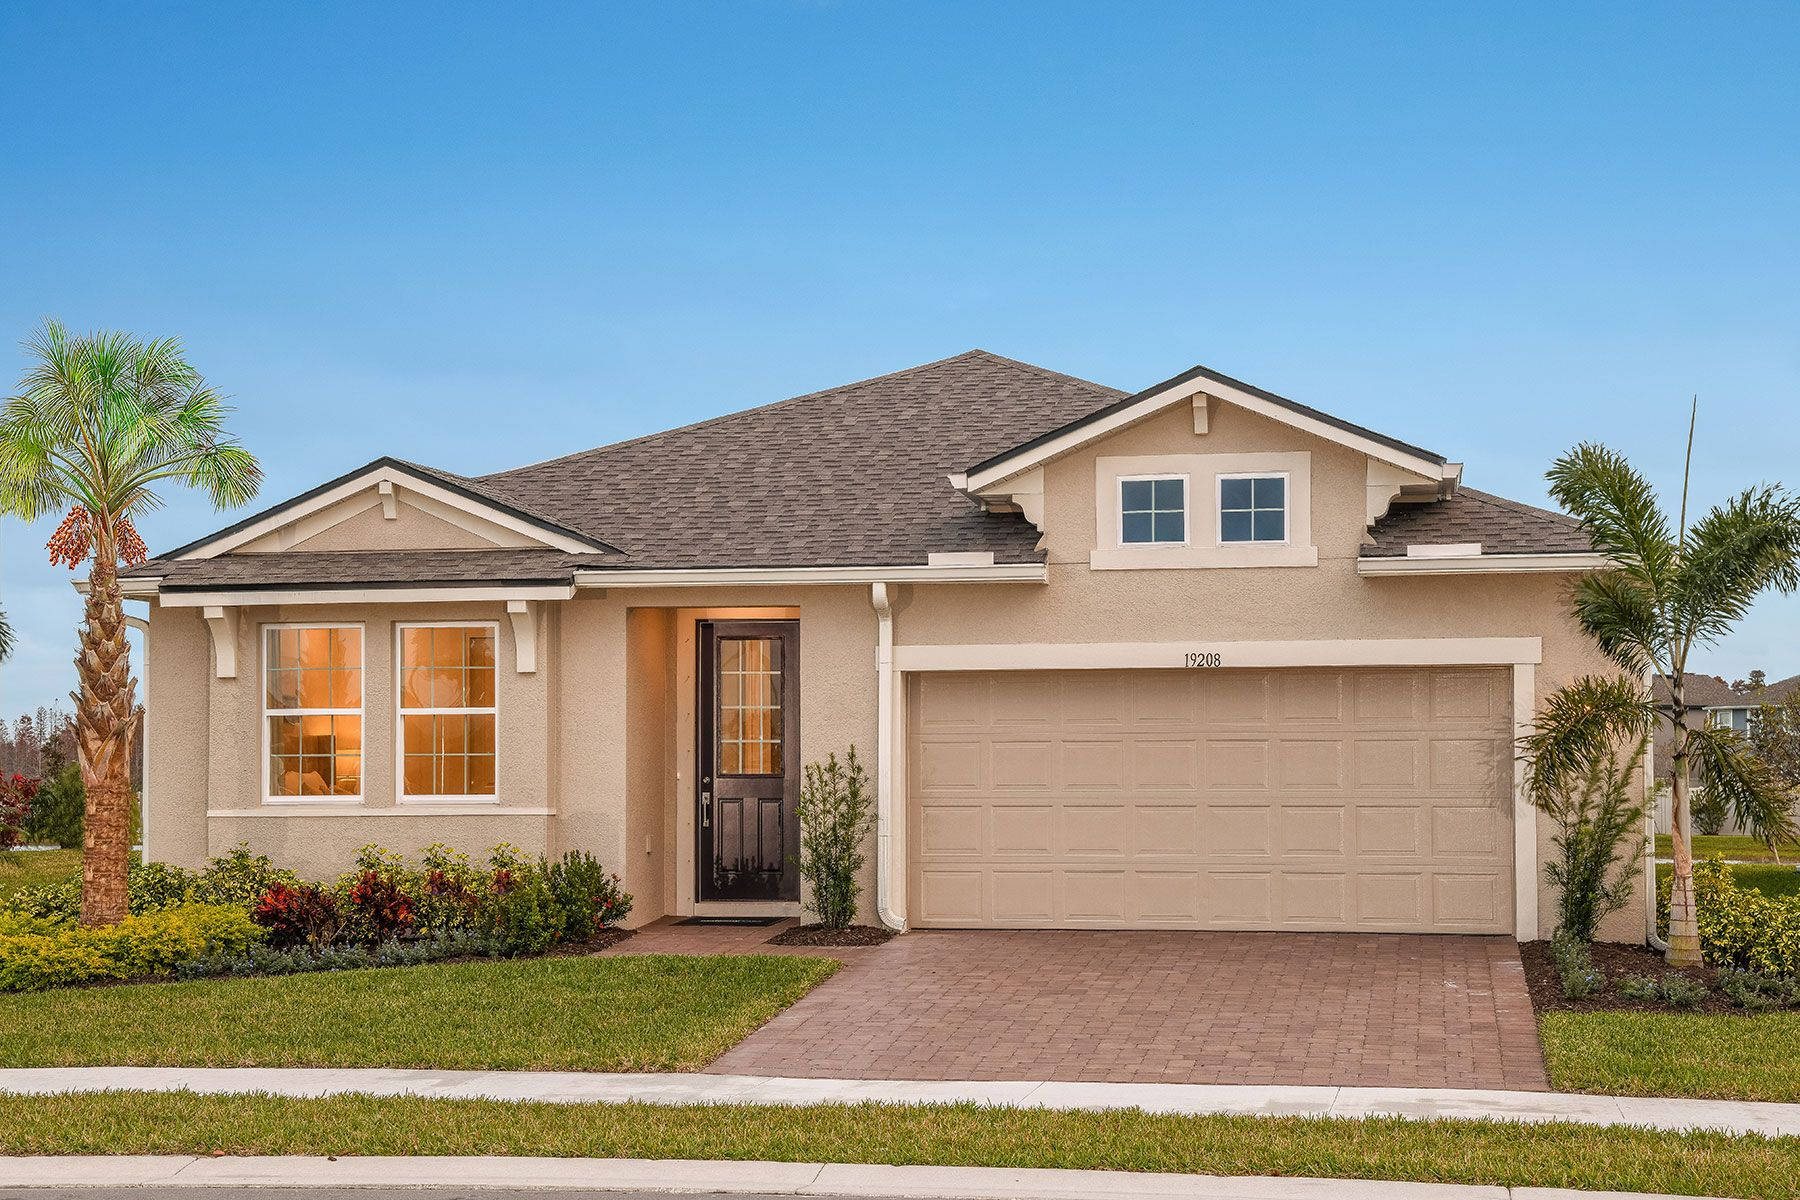 Exterior:PHOTOS ARE A REPRESENTATION OF A MODEL HOME.